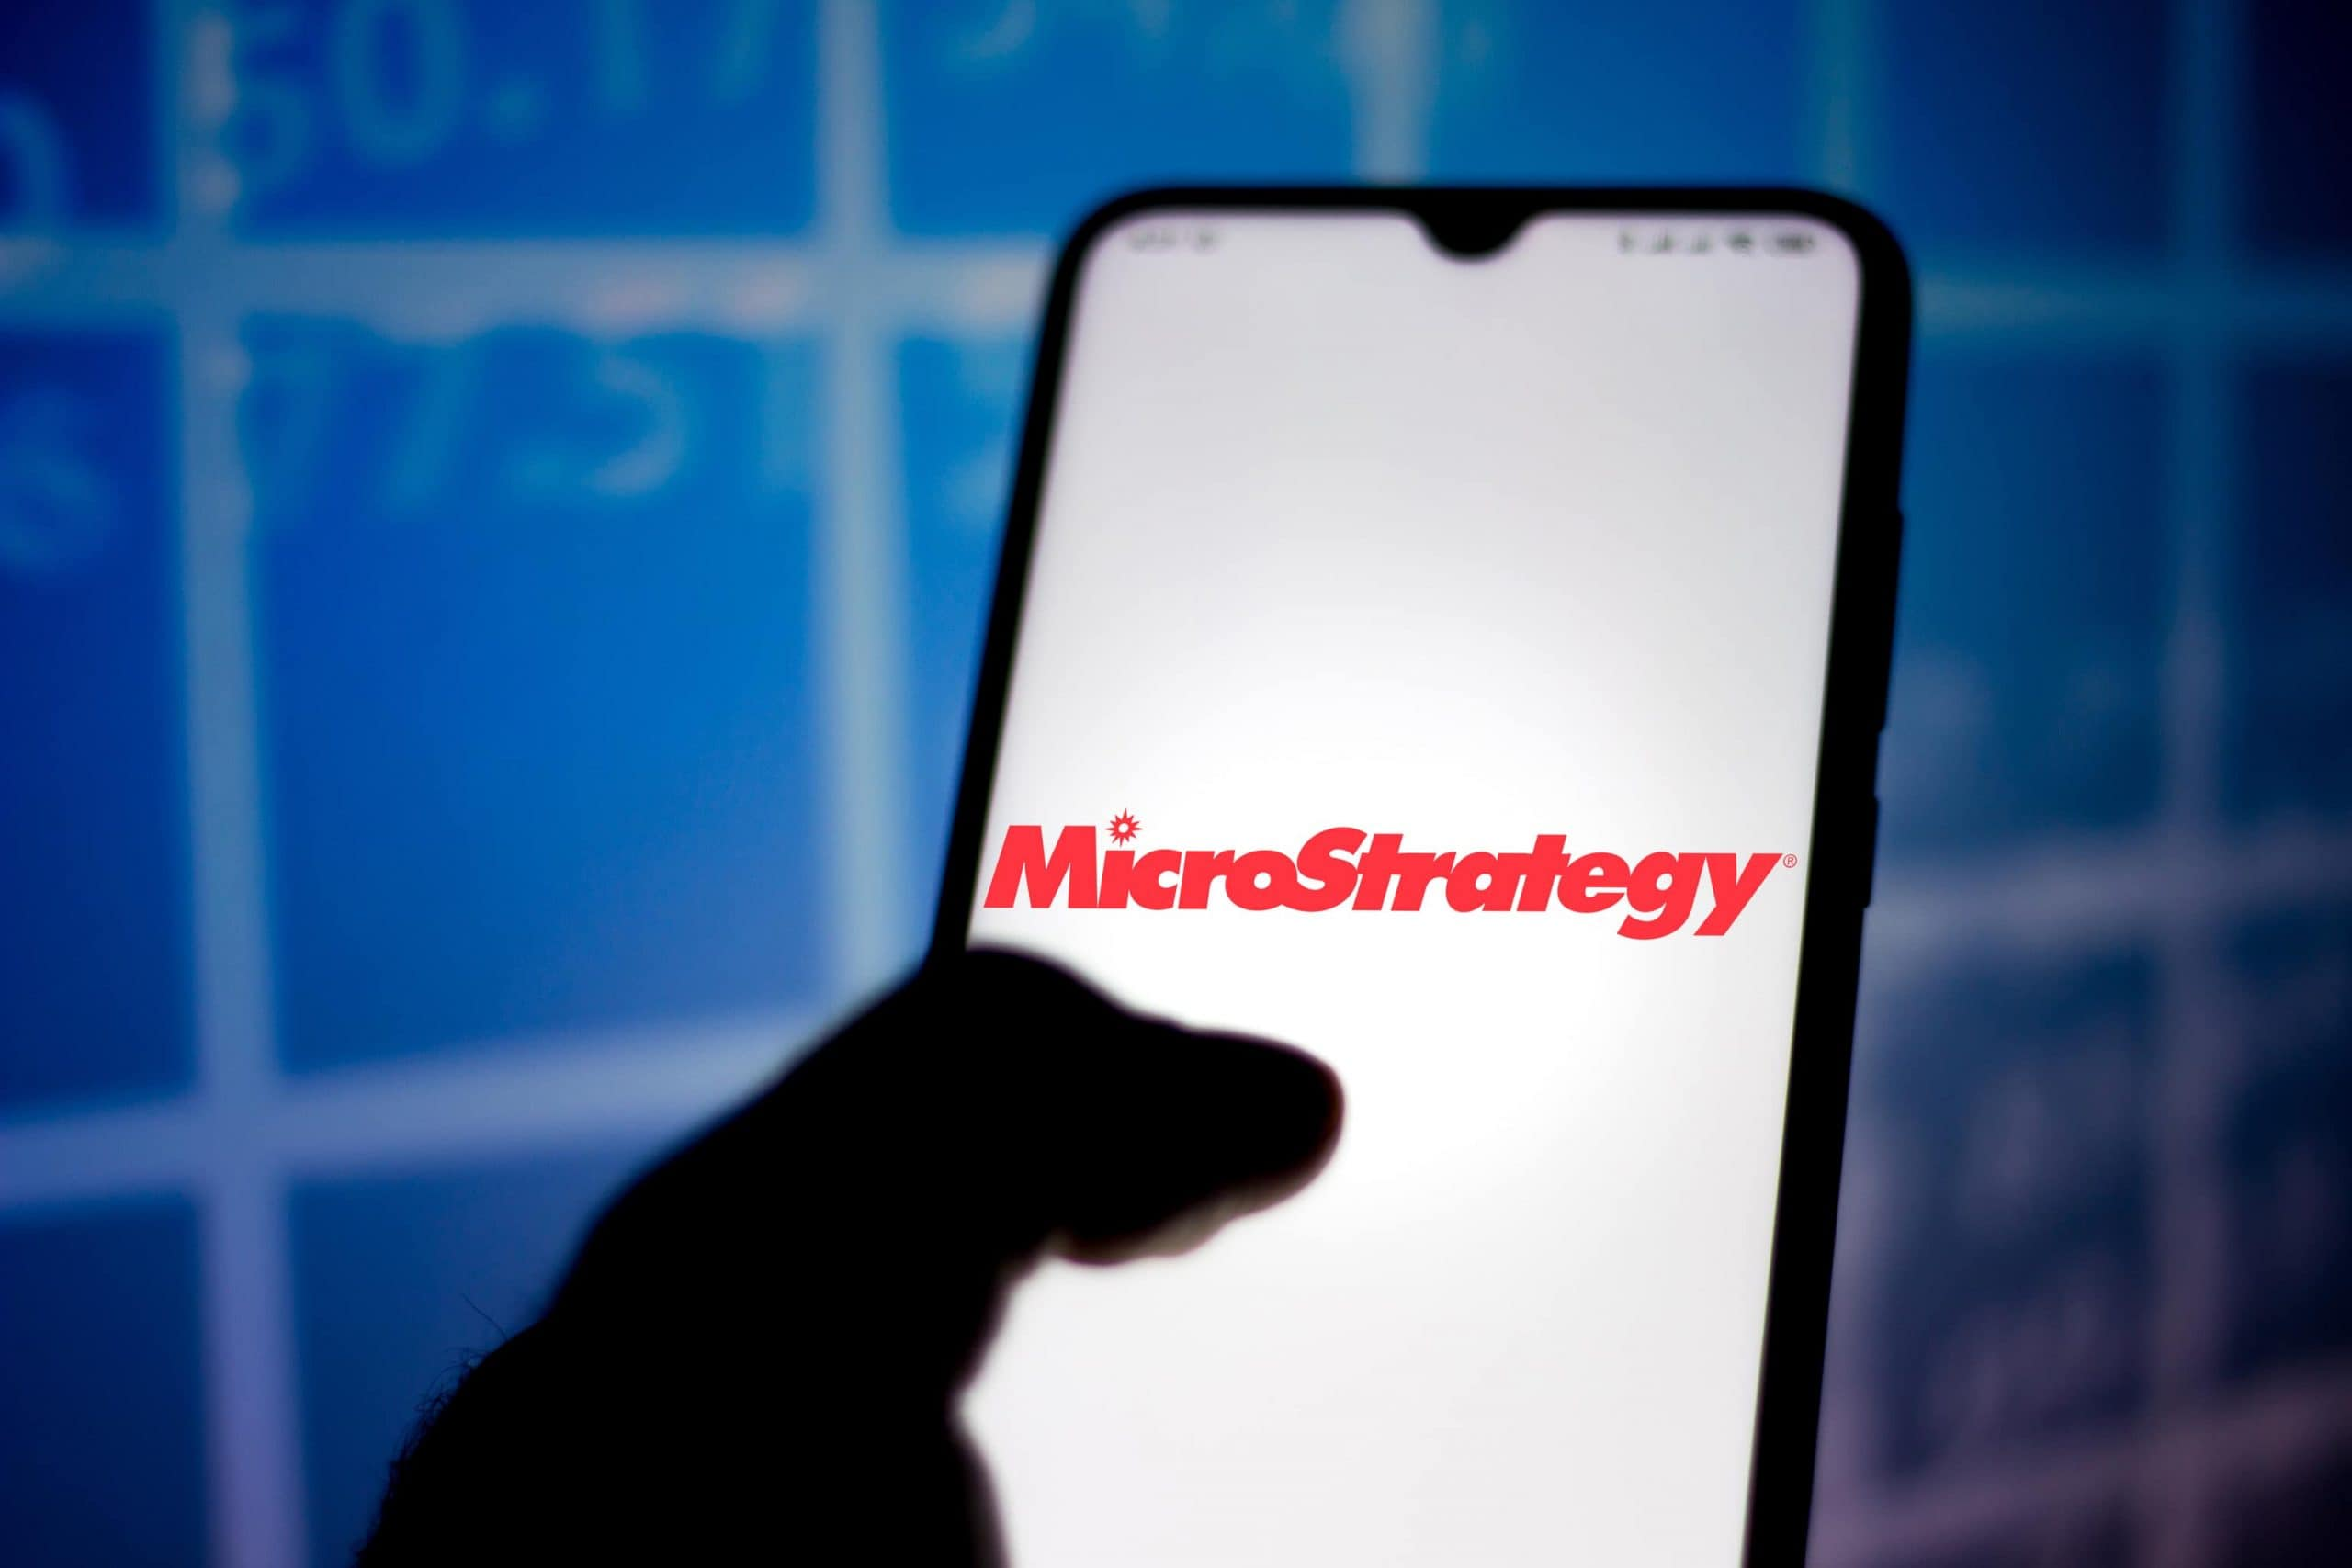 MicroStrategy Smartphone